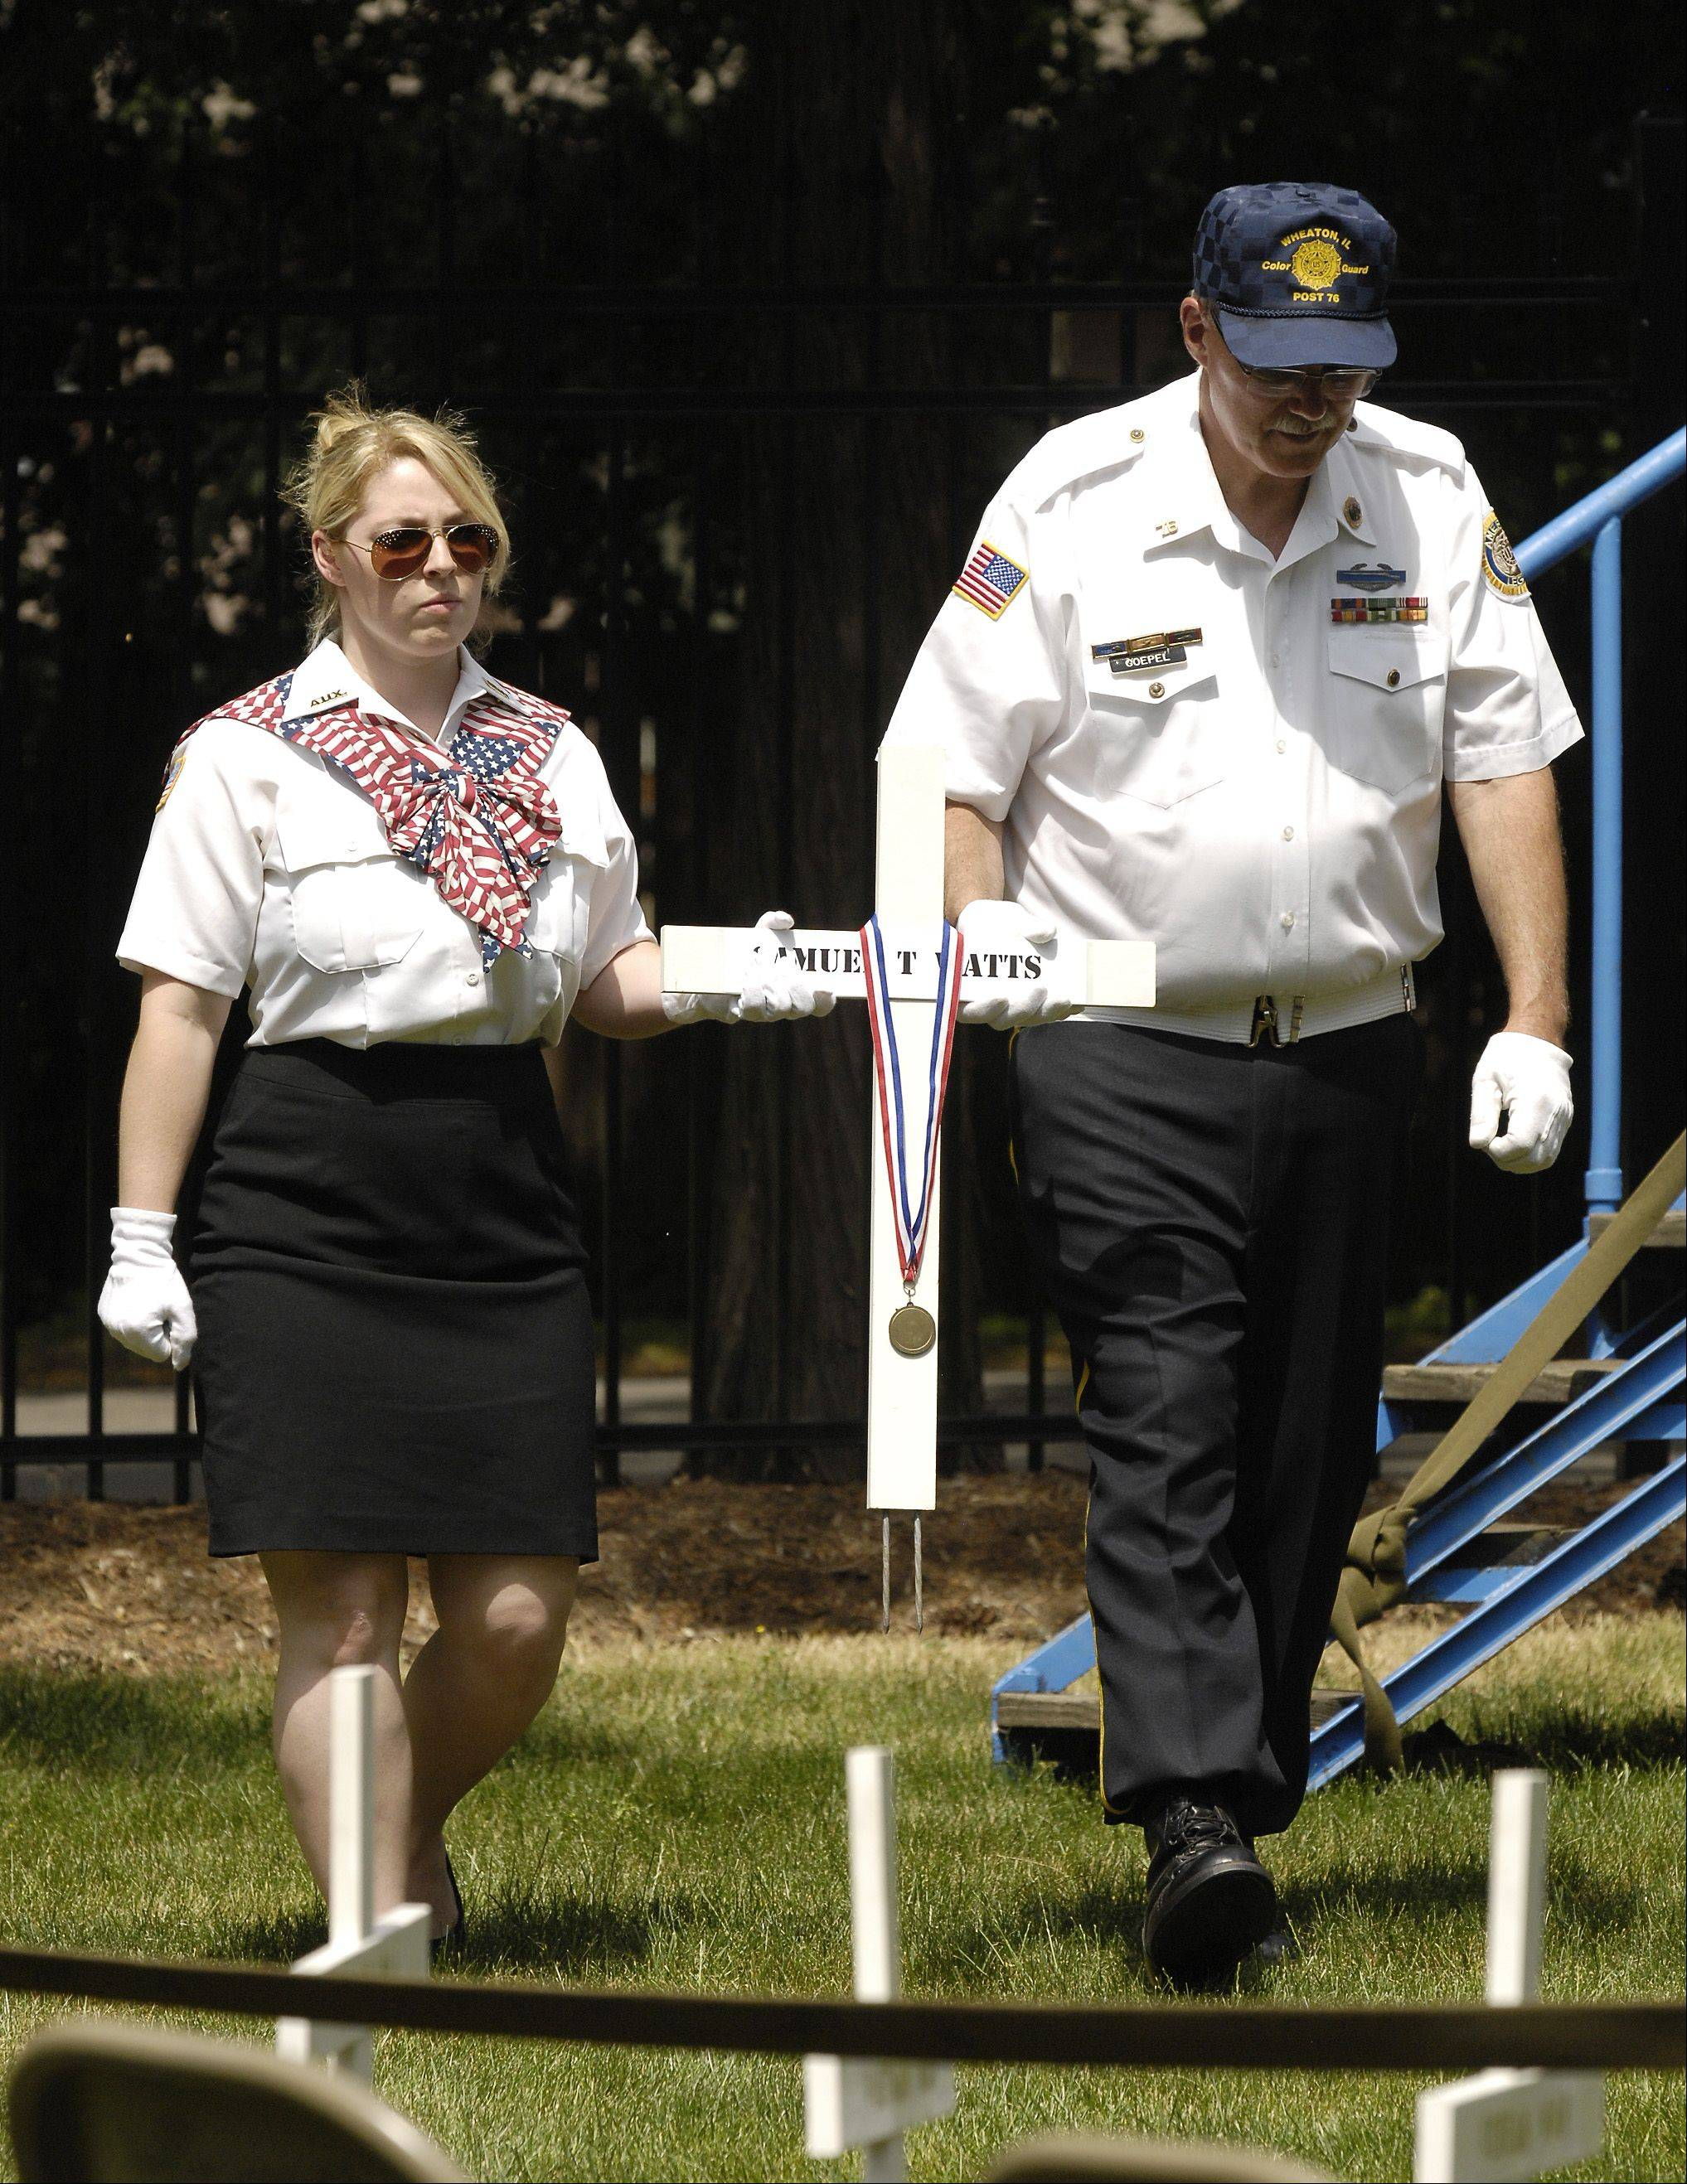 Nicolette Laurich, Jr. Vice President of Ladies Auxiliary of VFW Post 2164 and Jim Goepel of American Legion Post 67 and VFW Post 2164 carry a wooden cross in honor of U.S. Army Spc. Samuel Watts, who died Saturday from injuries he suffered last month from a roadside bomb in Afghanistan. The city of Wheaton held it's annual Memorial Day ceremony at Wheaton Cemetery, Monday.